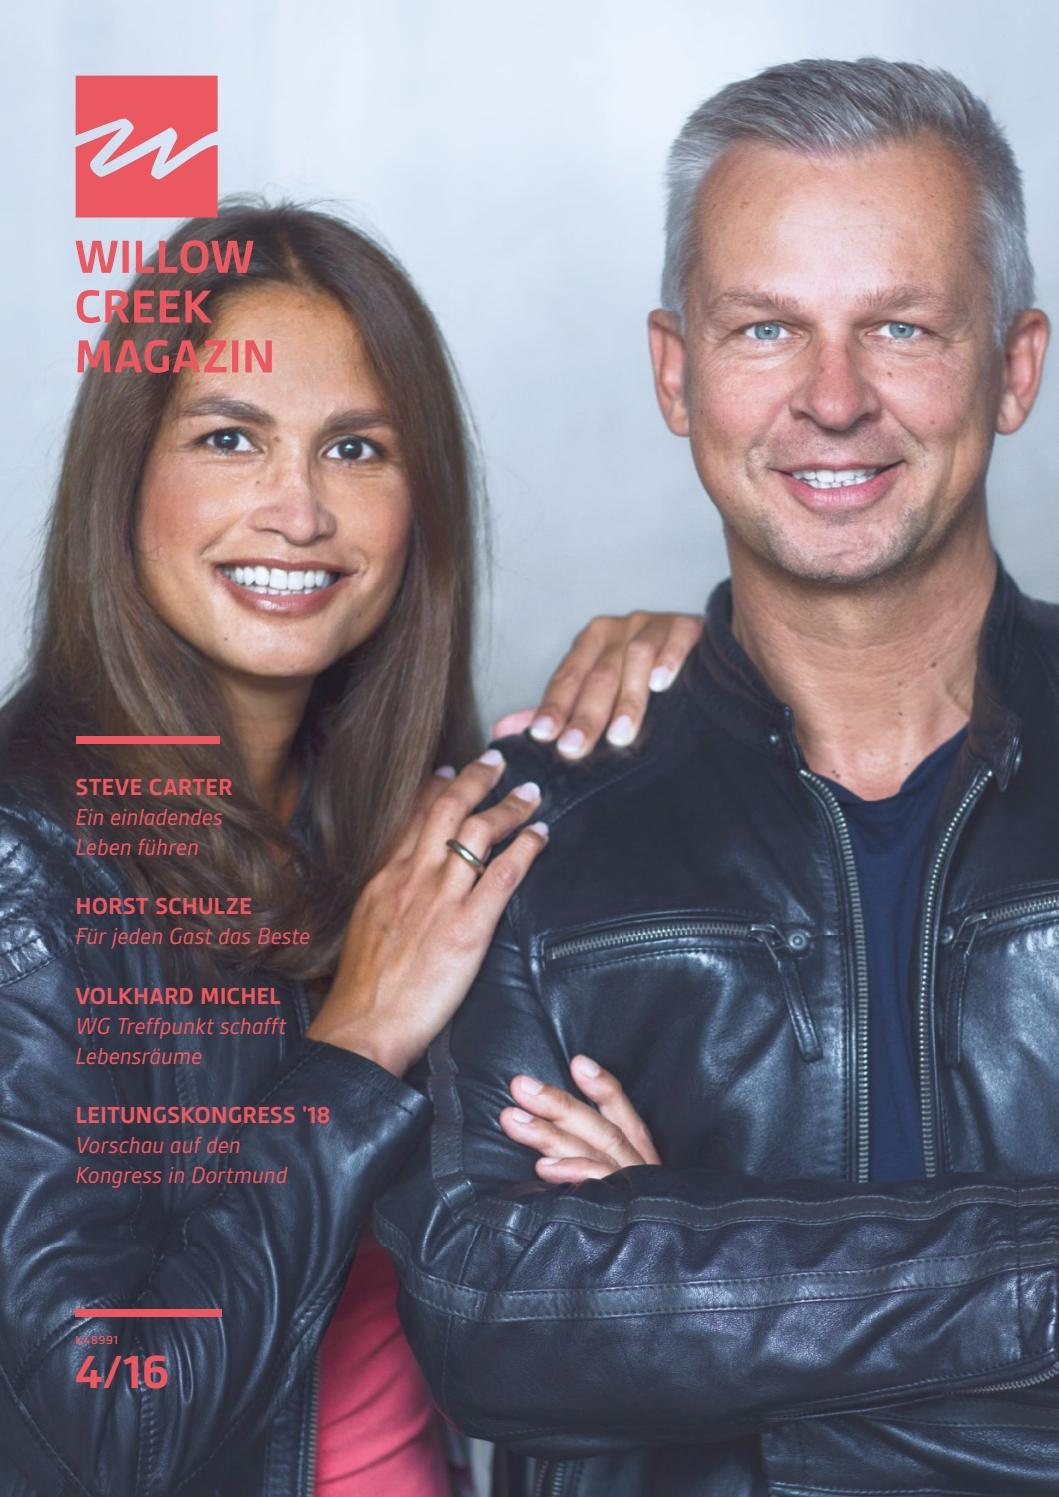 Deko Wehner Bad Homburg Willow Creek Magazin 4 16 By Willow Creek D Ch Issuu